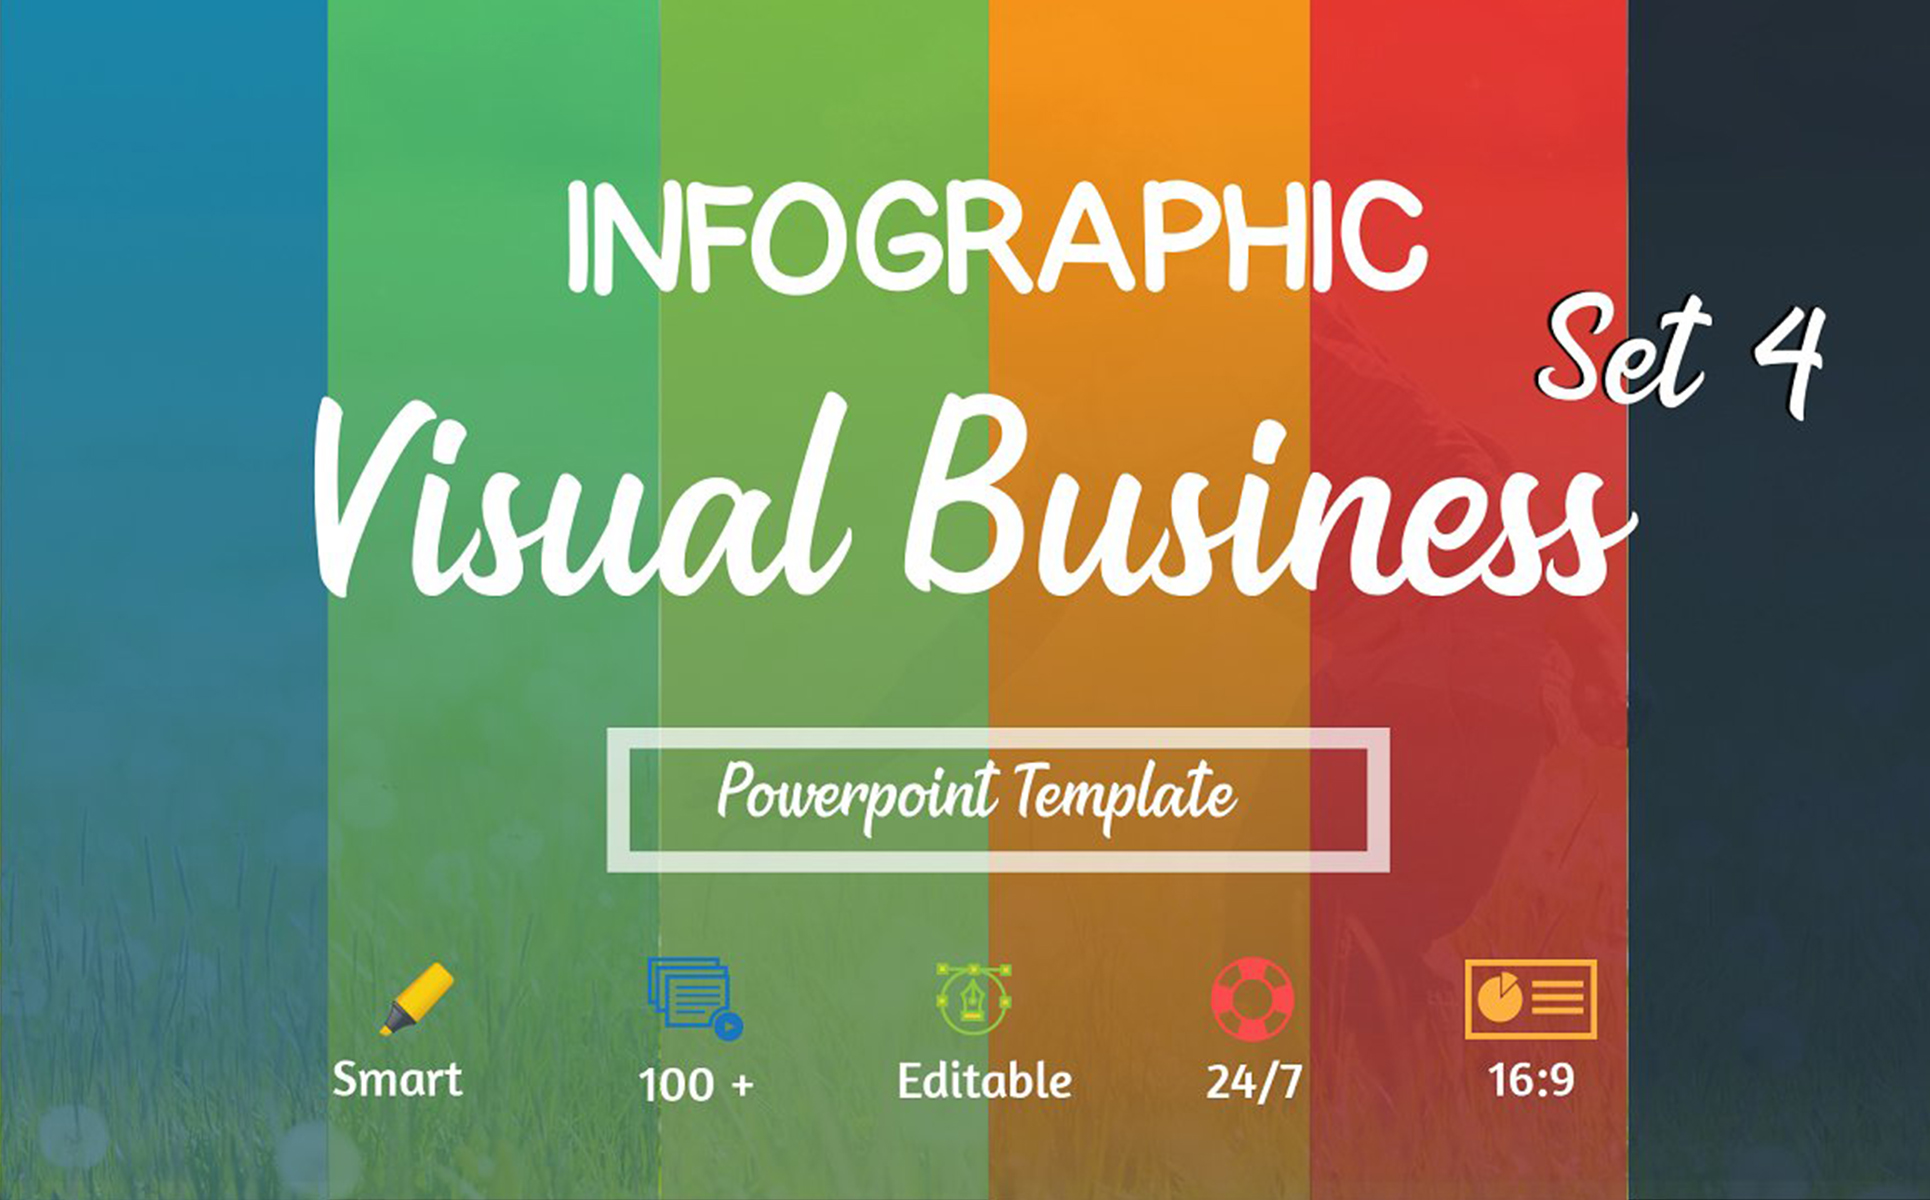 Visual Business Set 4 PowerPoint Template